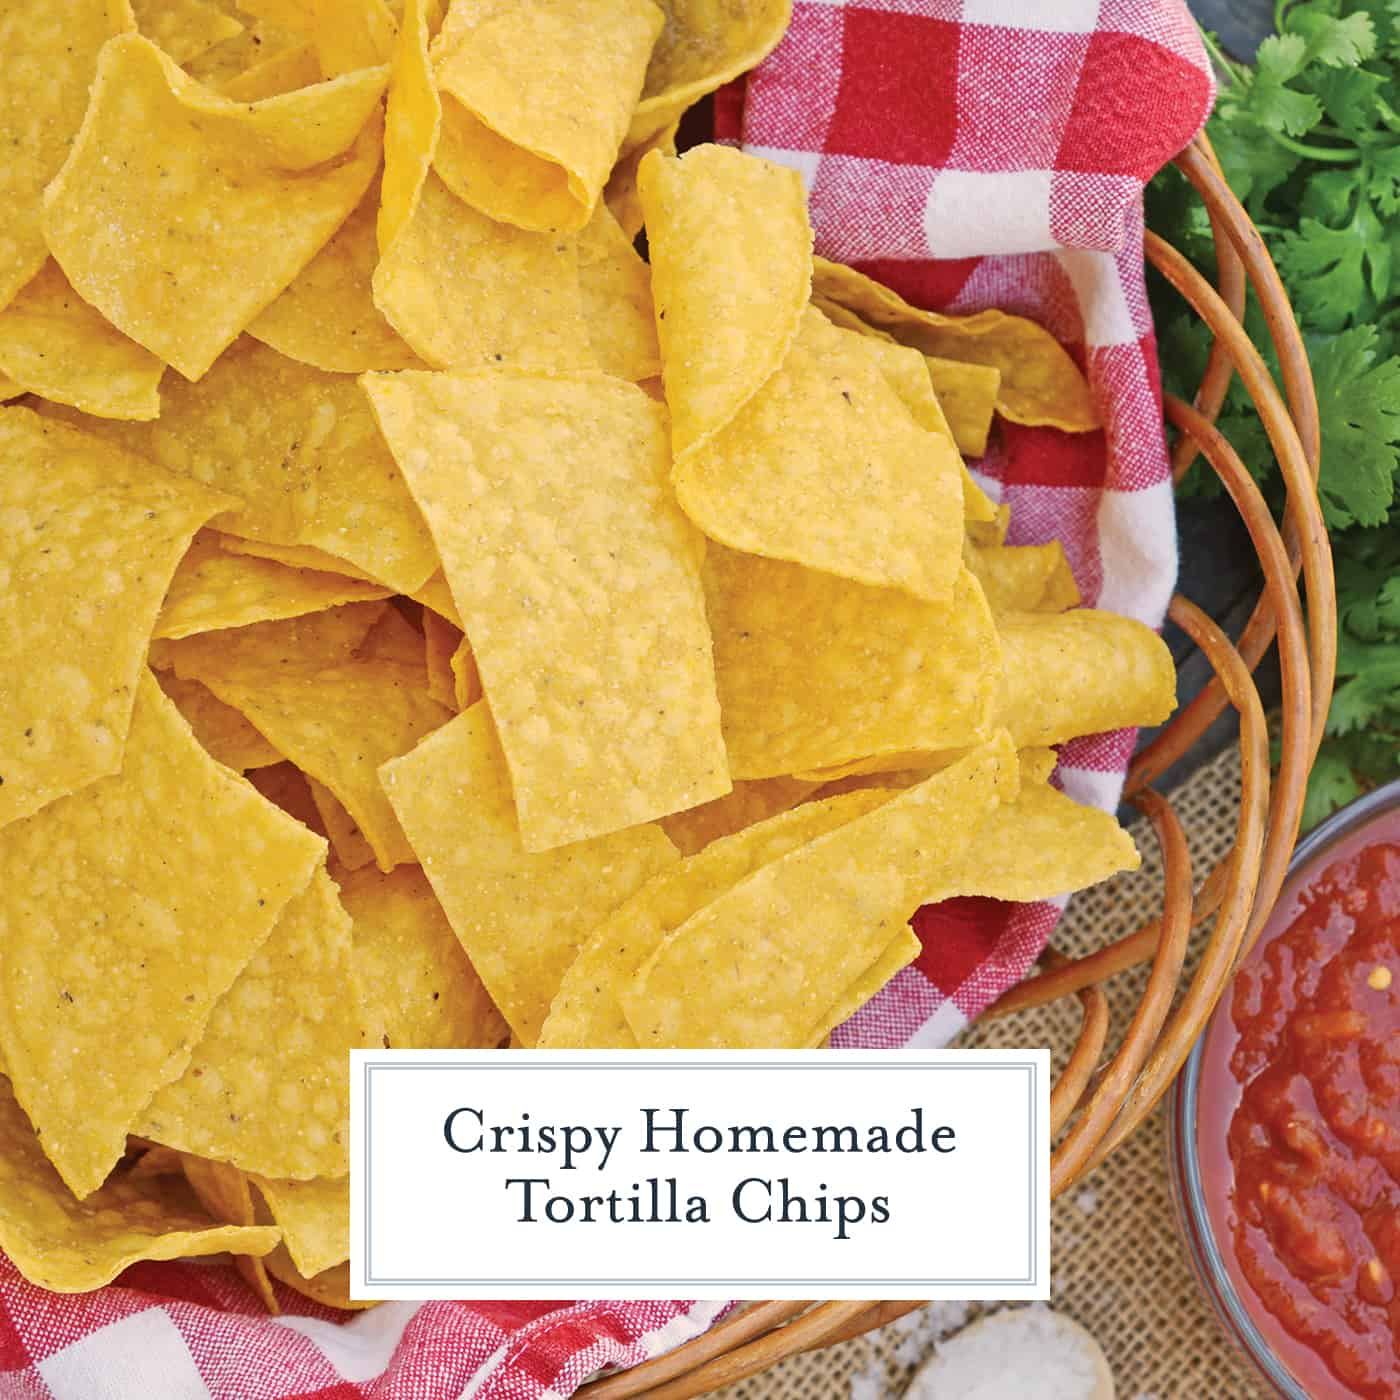 homemade tortilla chips use your leftover corn tortillas to make homemade tortilla chips super